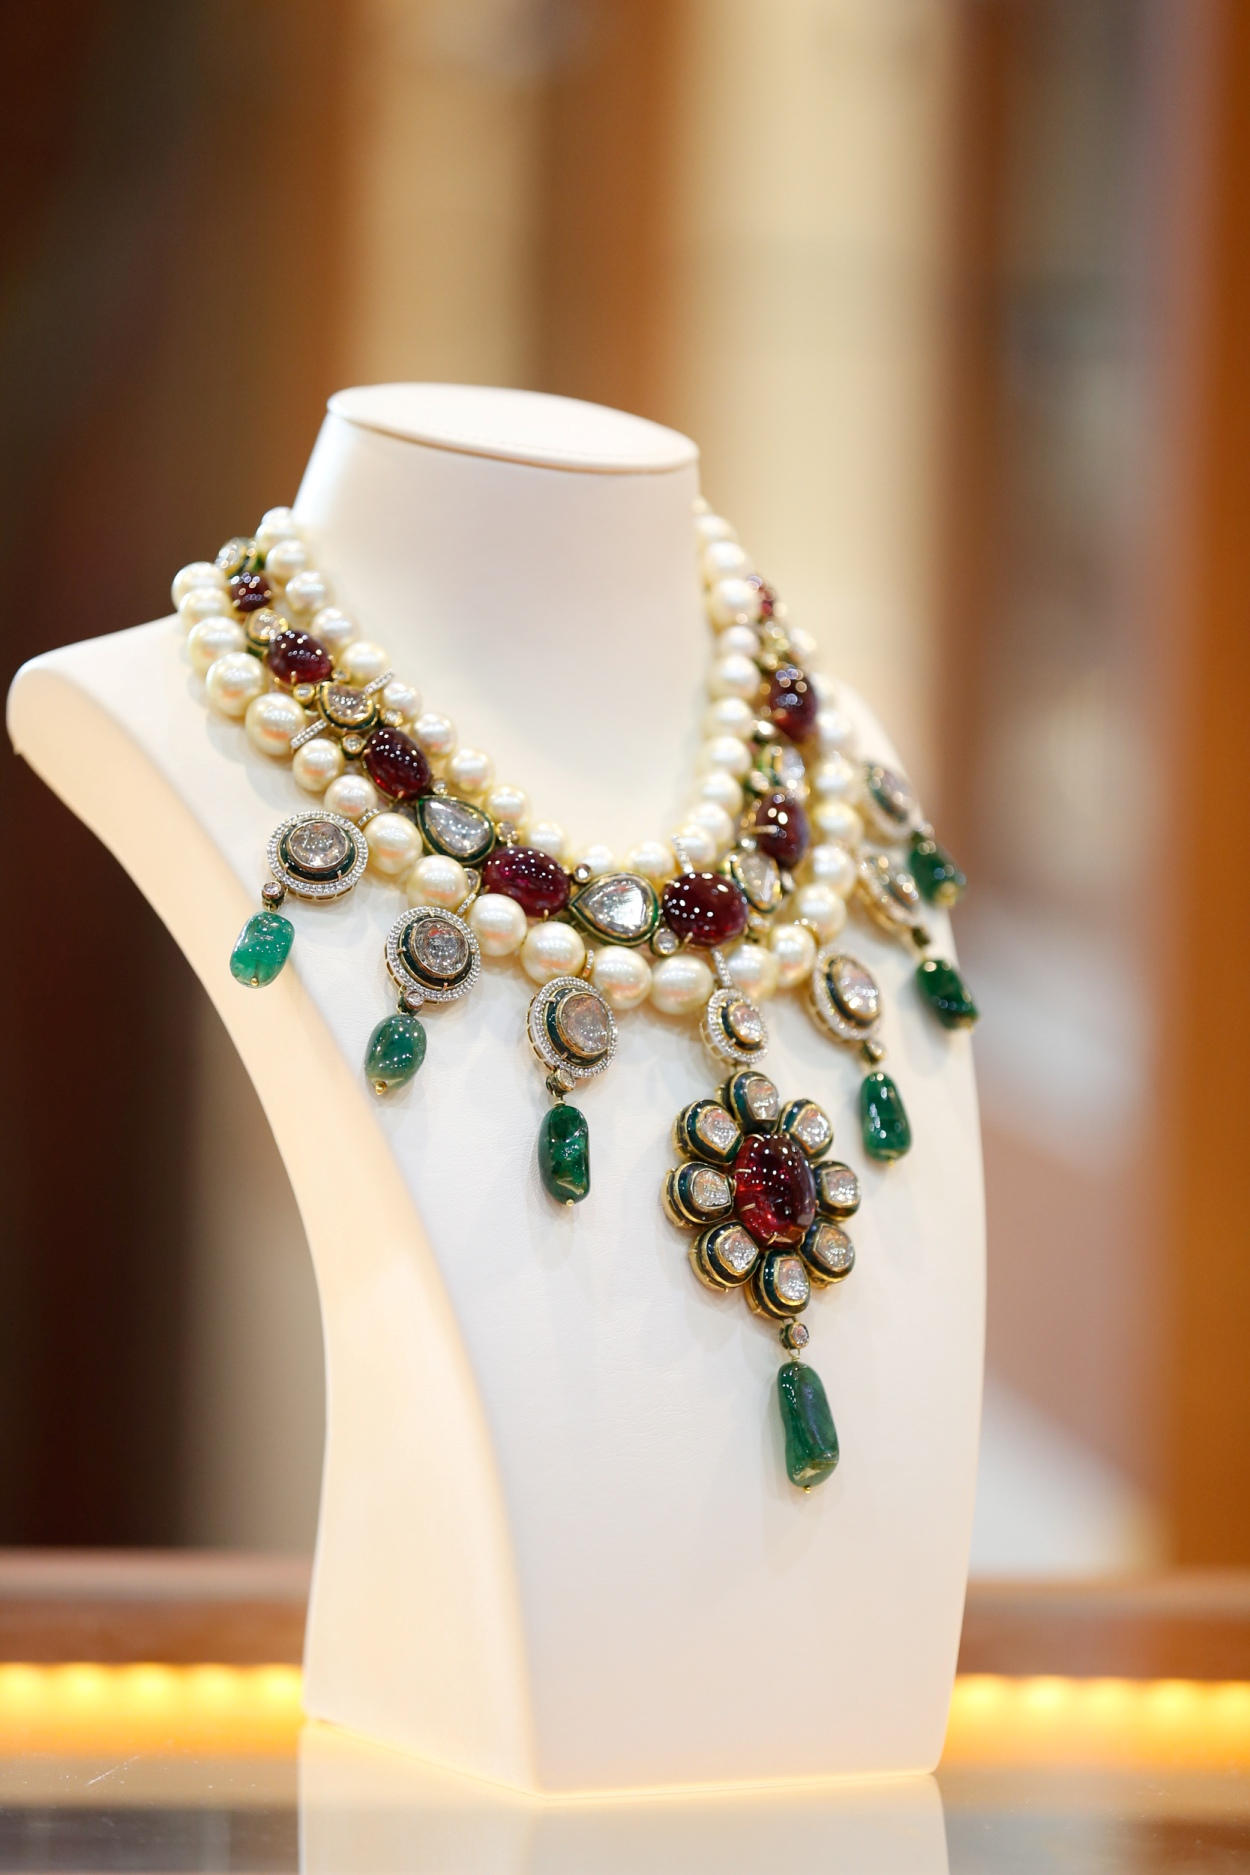 Inspired by designs worn by Indian royalty, Bharnay's unique piece from the Royal Jewels Collection contains old diamonds, emeralds, rubies and classic pearl drops. The set retails for AED 239,000.